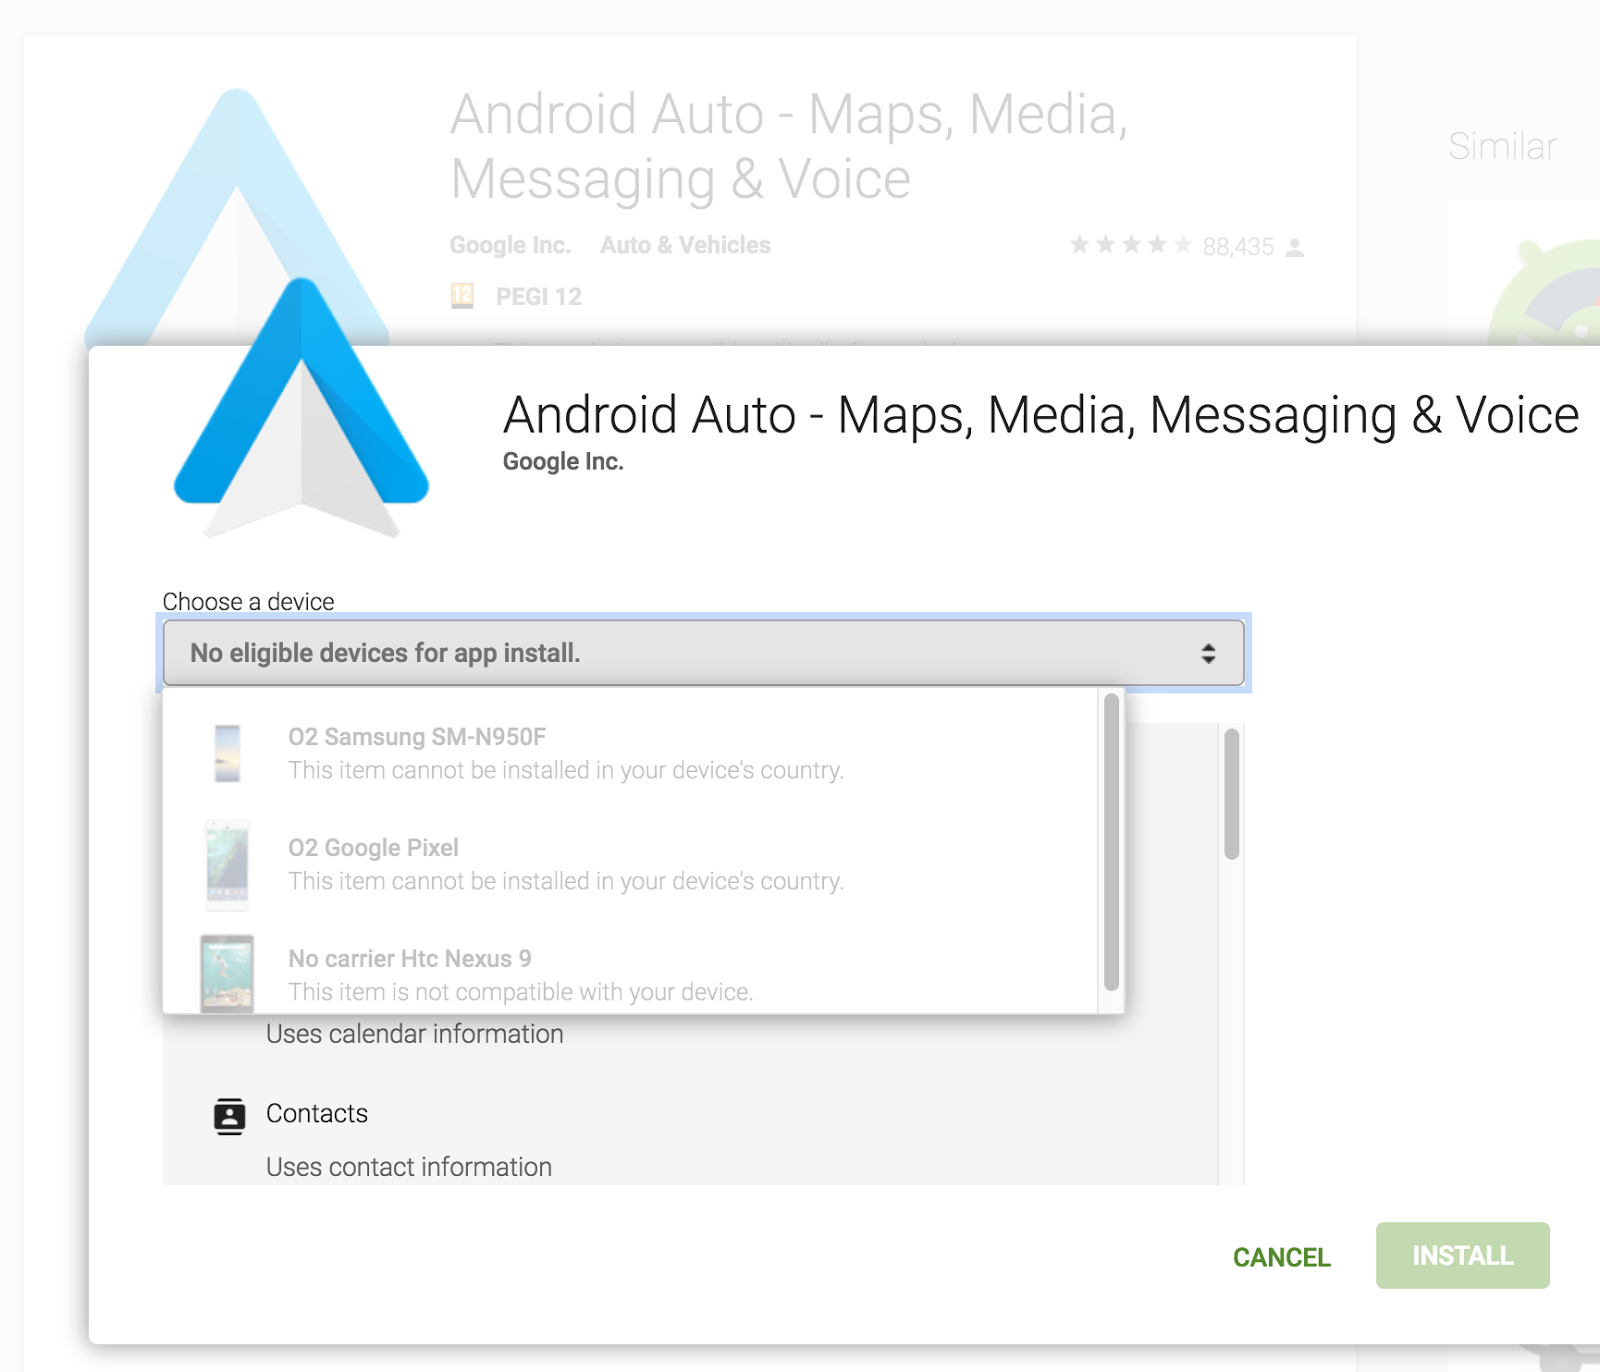 Android Auto availability in other countries - Android Auto Help